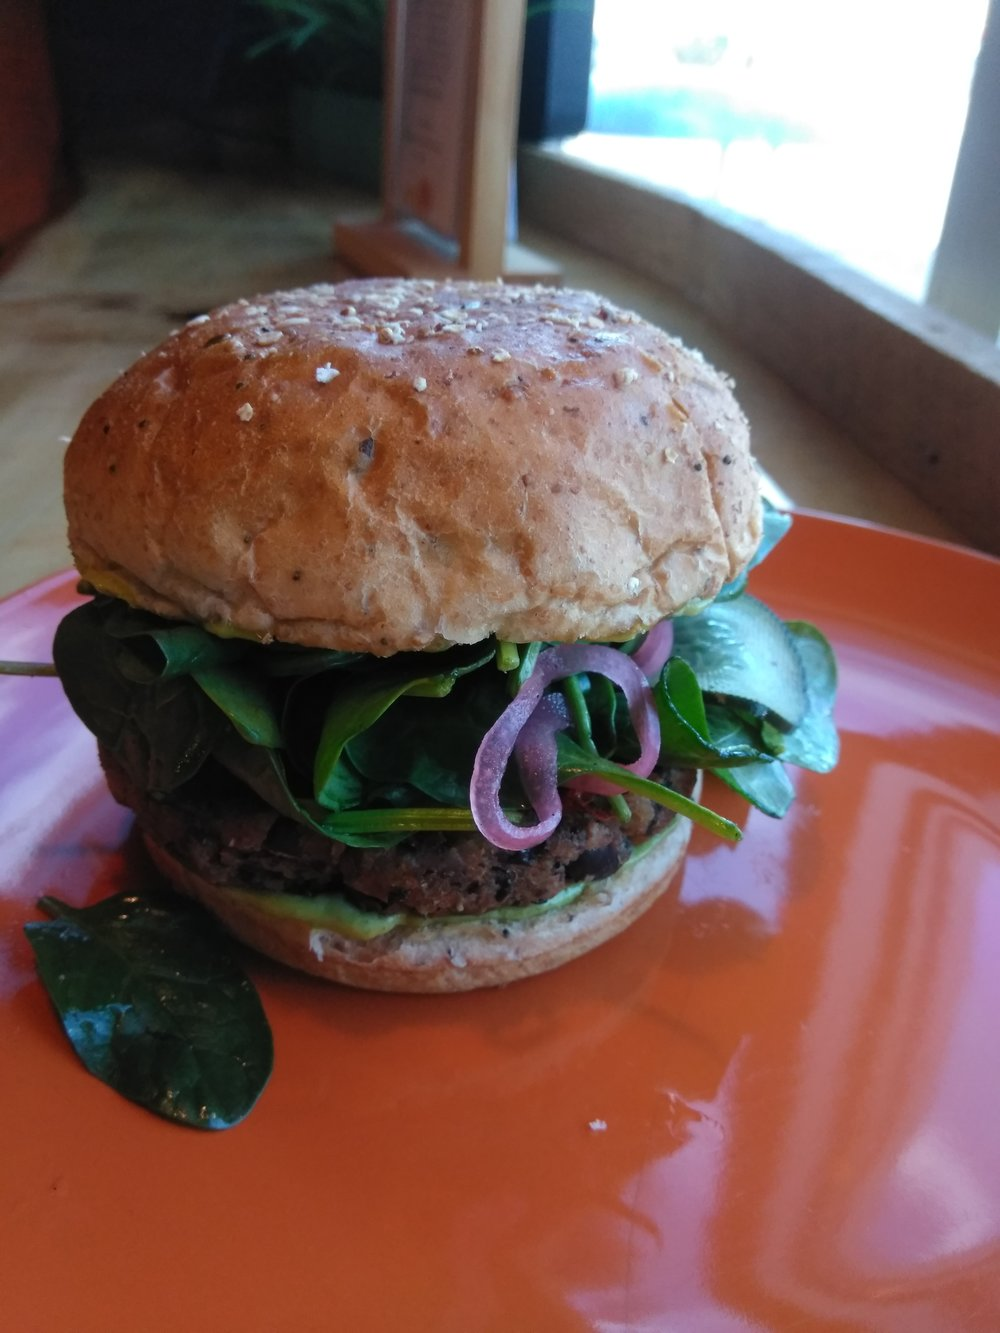 Our newest menu item: Black Bean & Veggie Burger